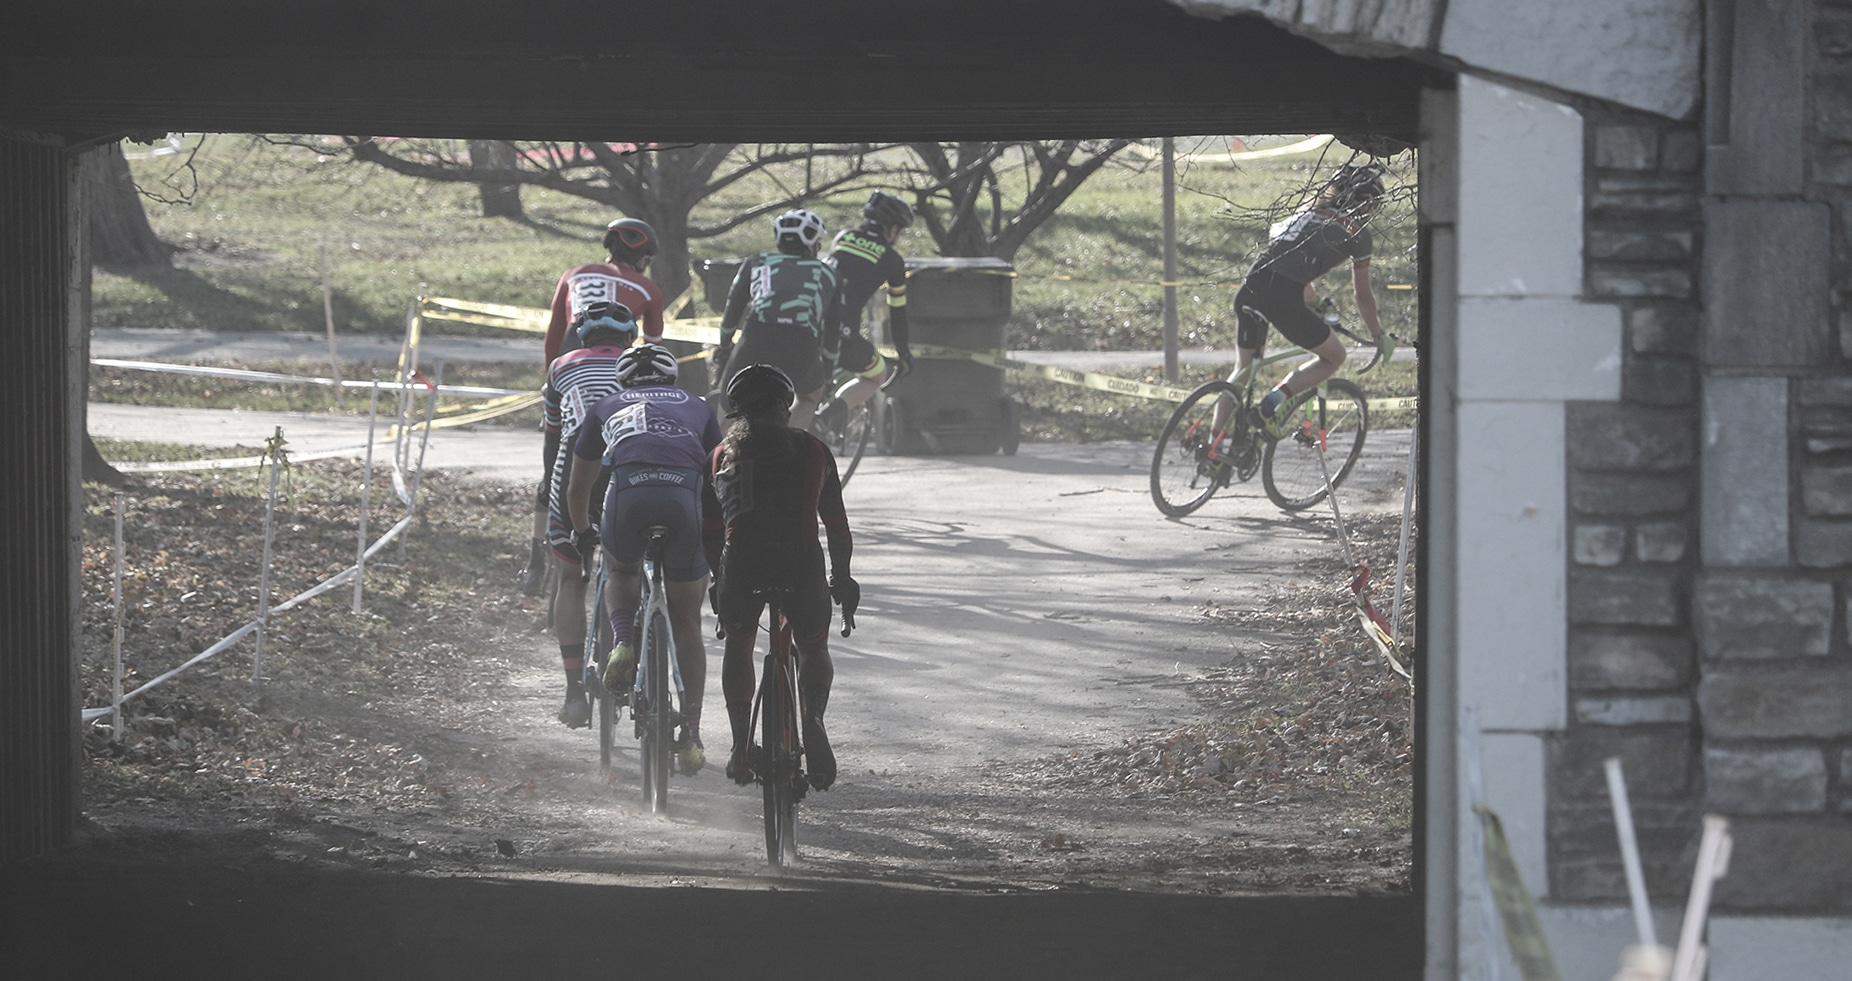 Racers riding under the bridge